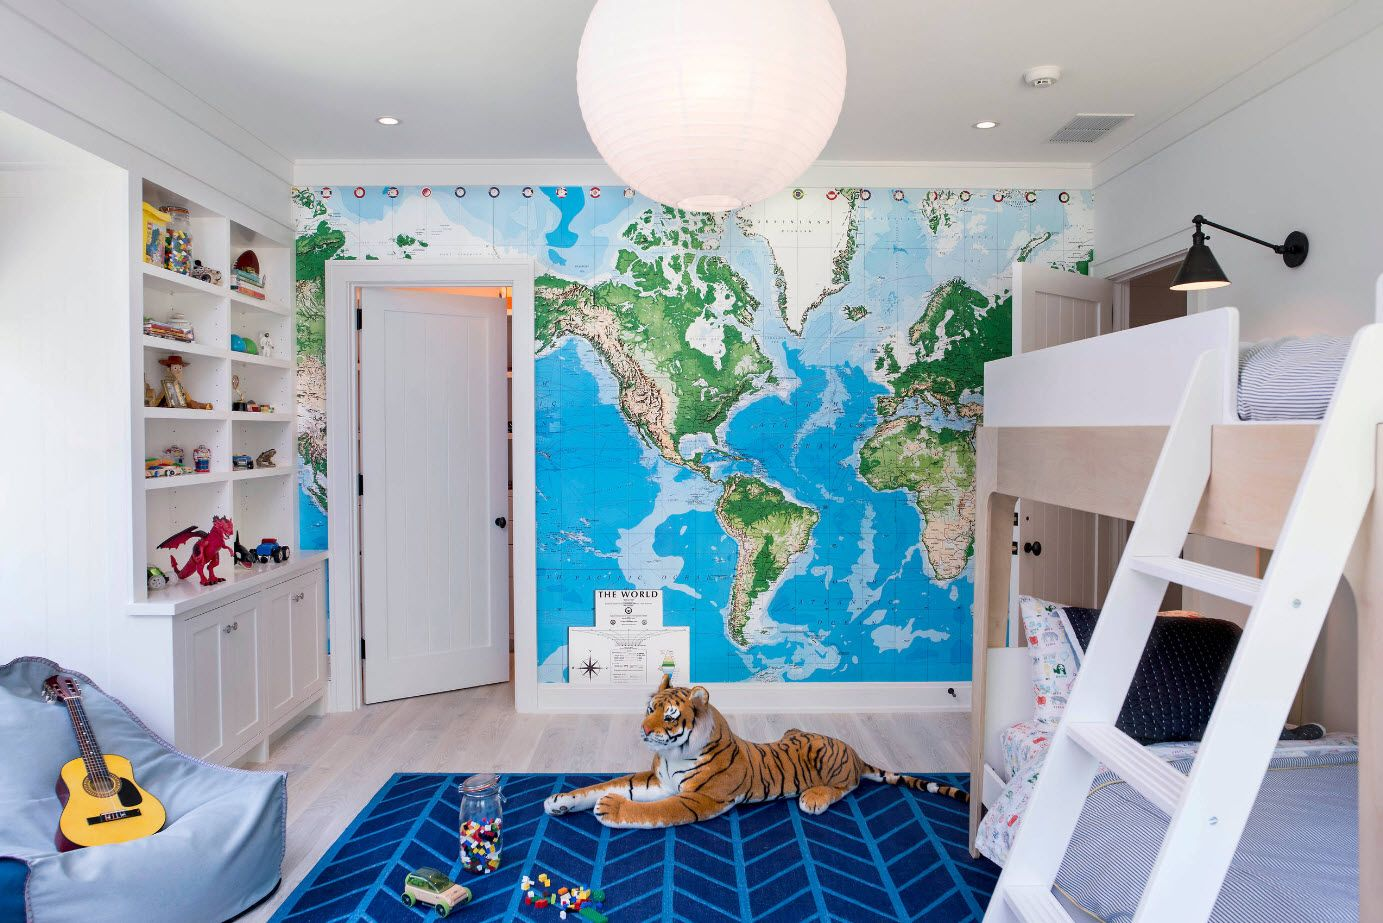 100 Best Children's Room Modern Trends Design Ideas 2017. Almost interactive map wallpaper